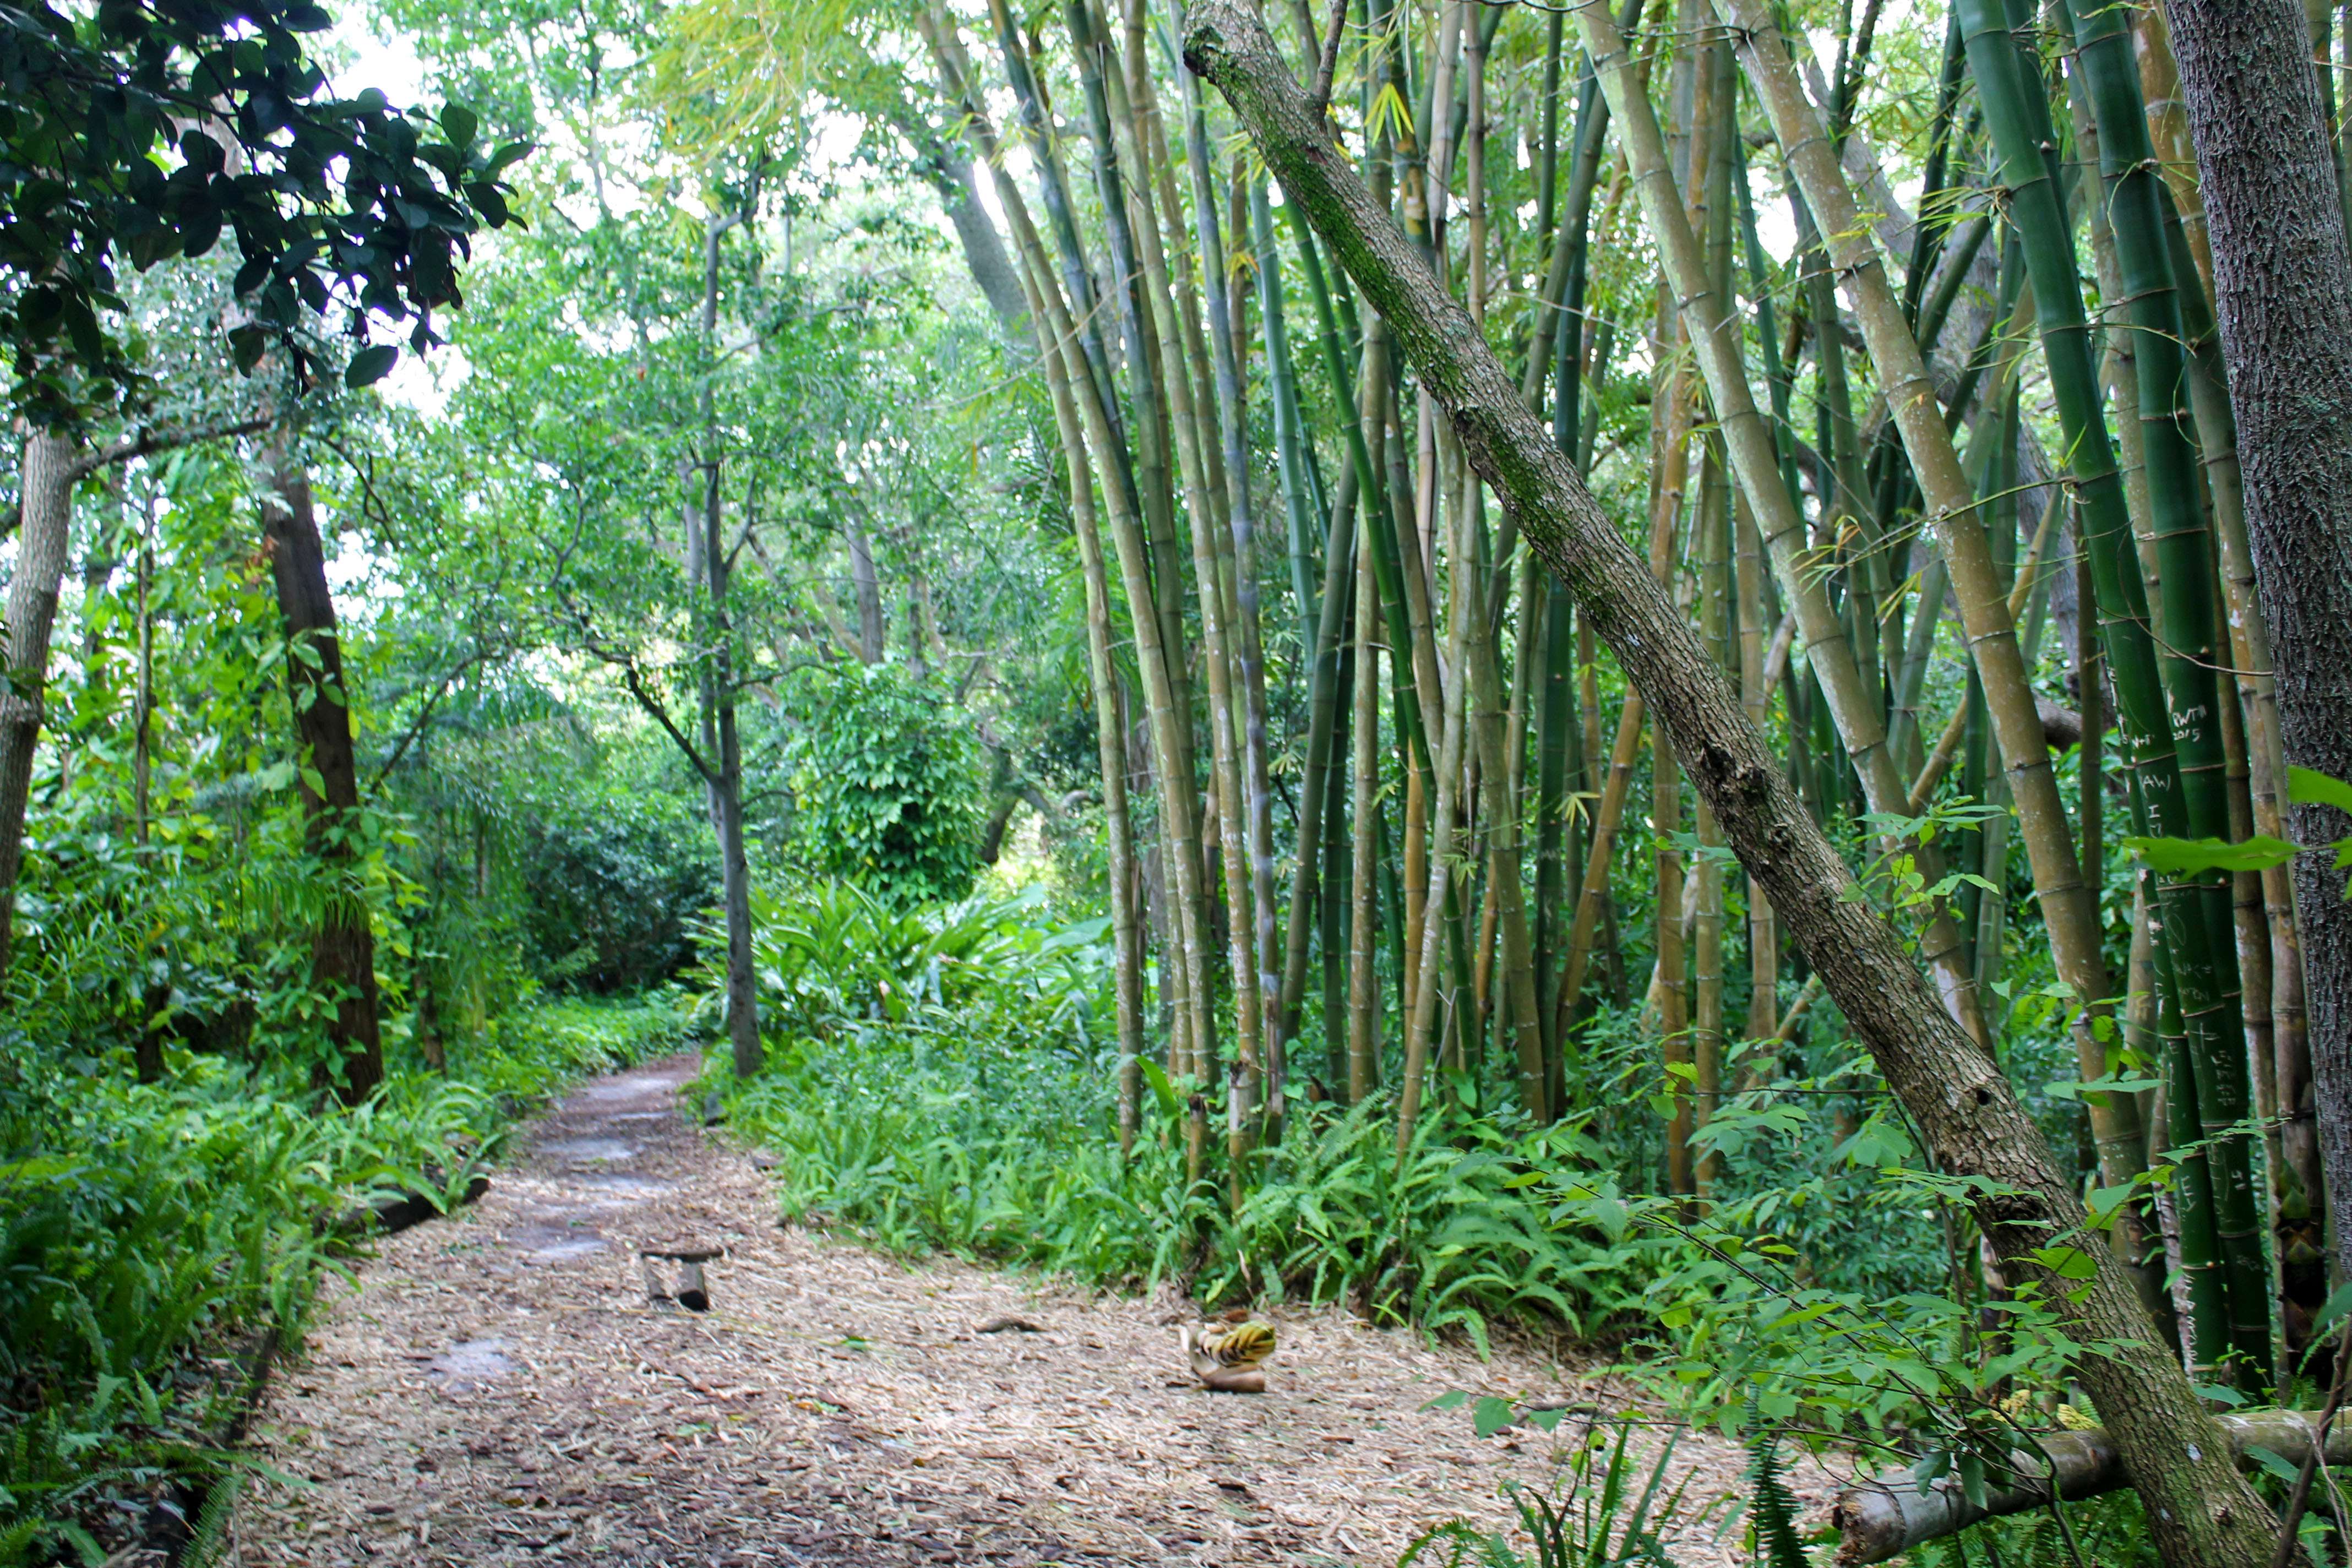 Bamboo trees growing along the walking path in Nature Park